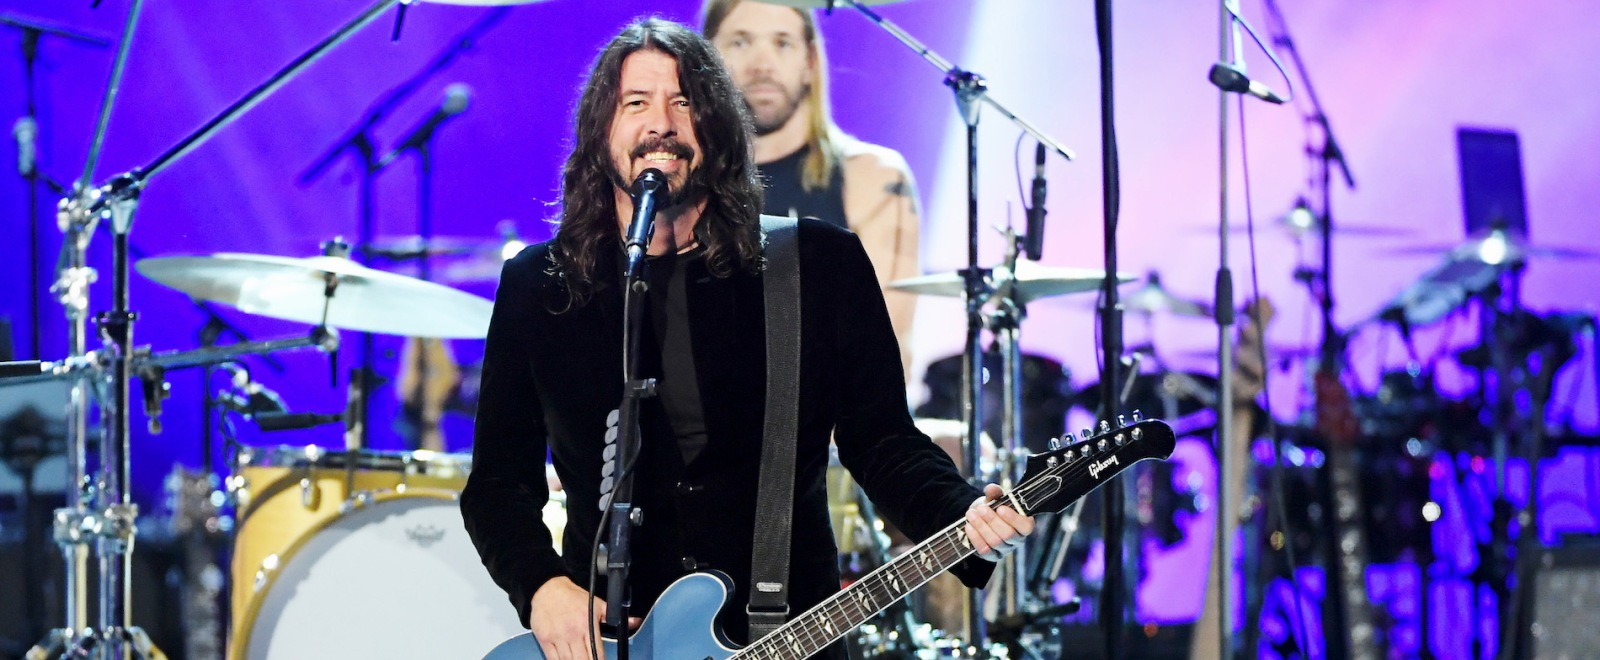 dave-grohl-foo-fighters-getty-full.jpg